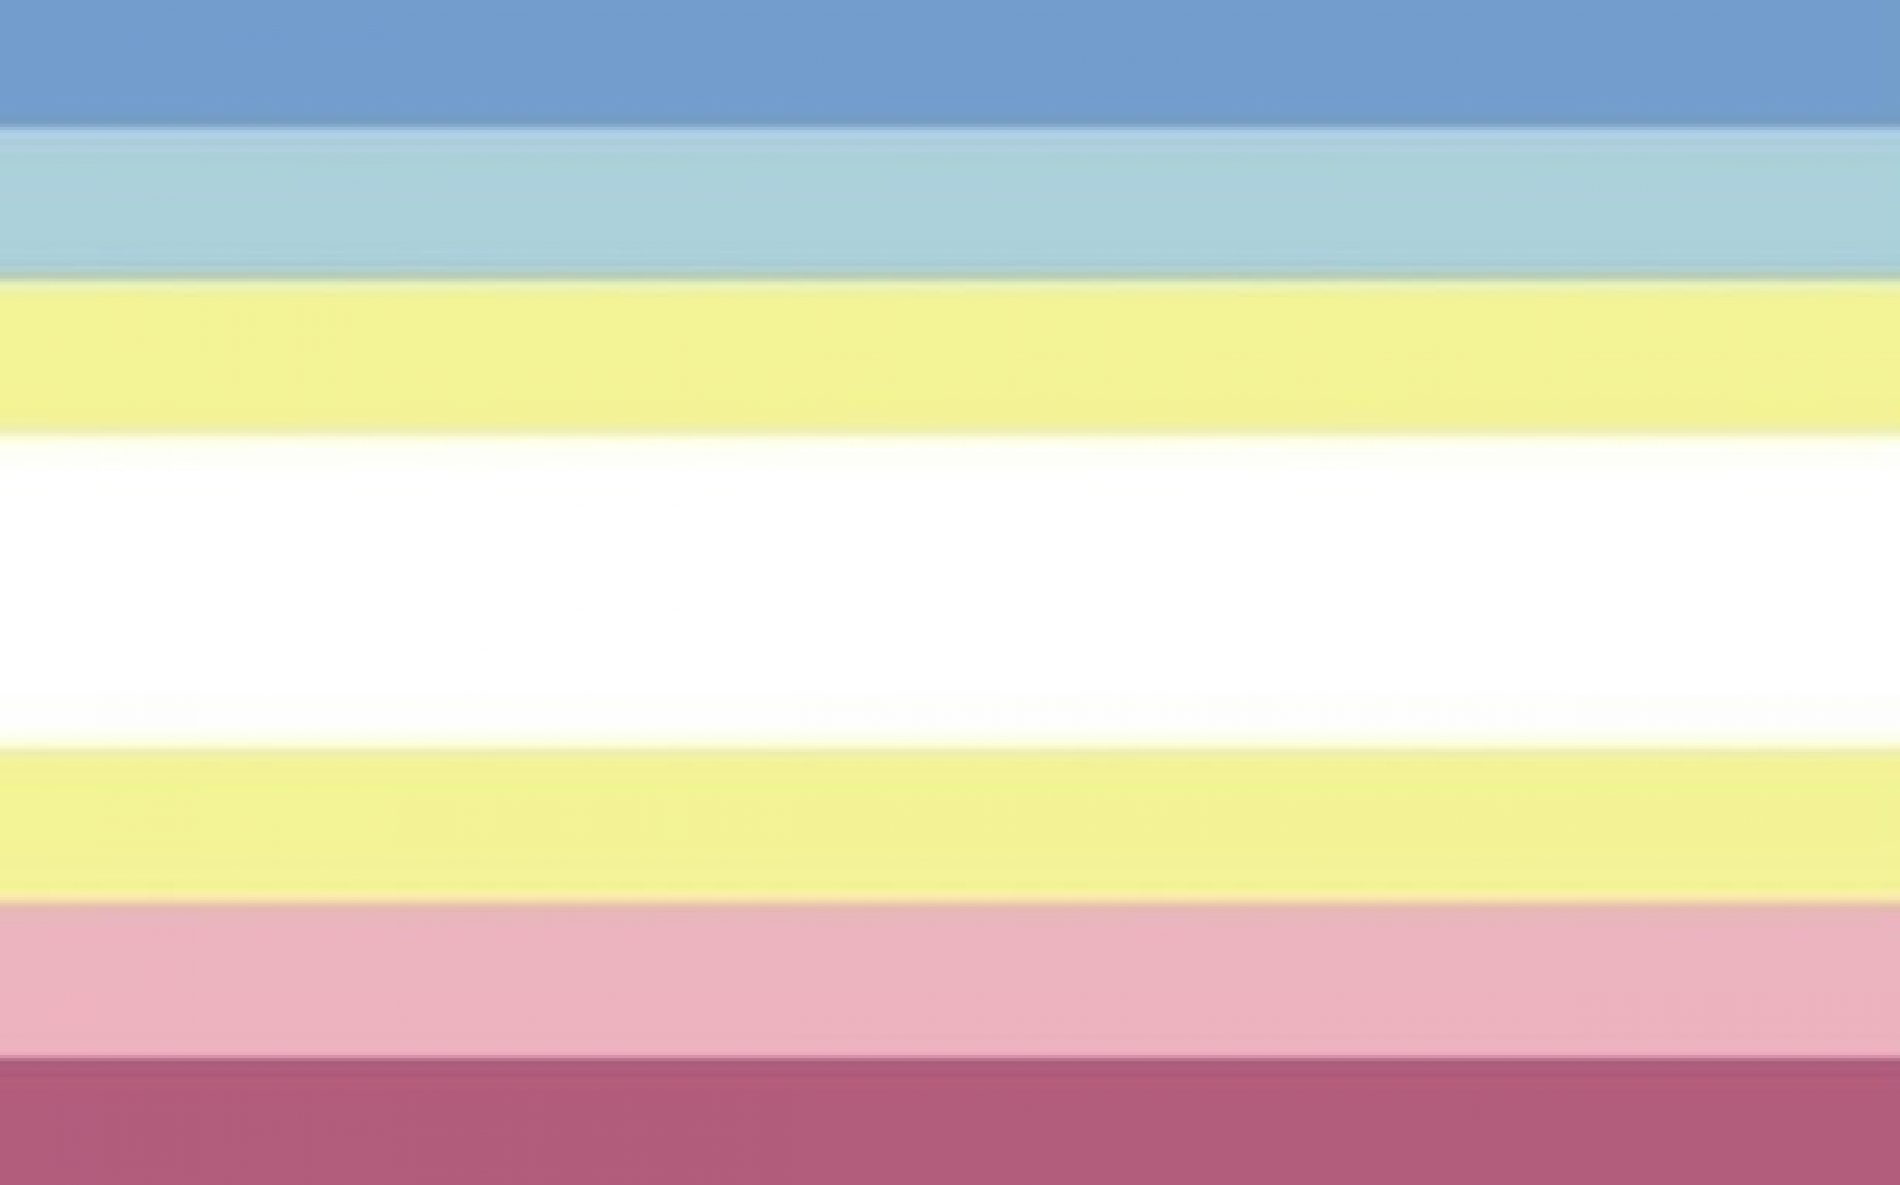 The Flag That Pedophiles Are Trying To Legitimize